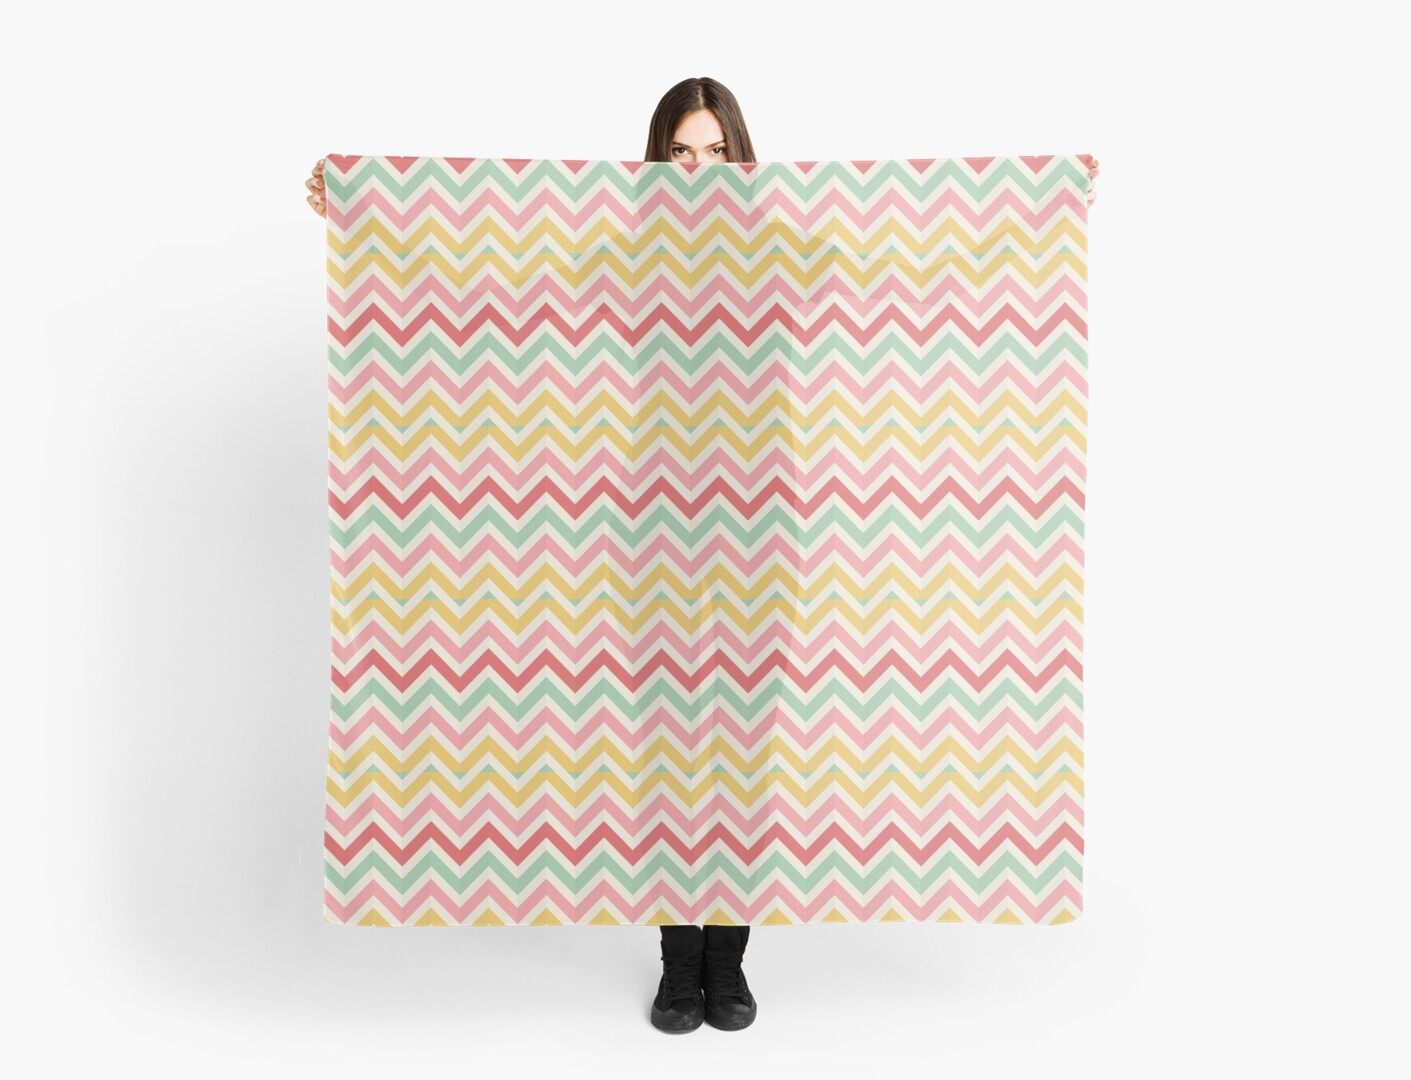 Chevron Pattern in Red, Yellow Pink by Susanne Floe